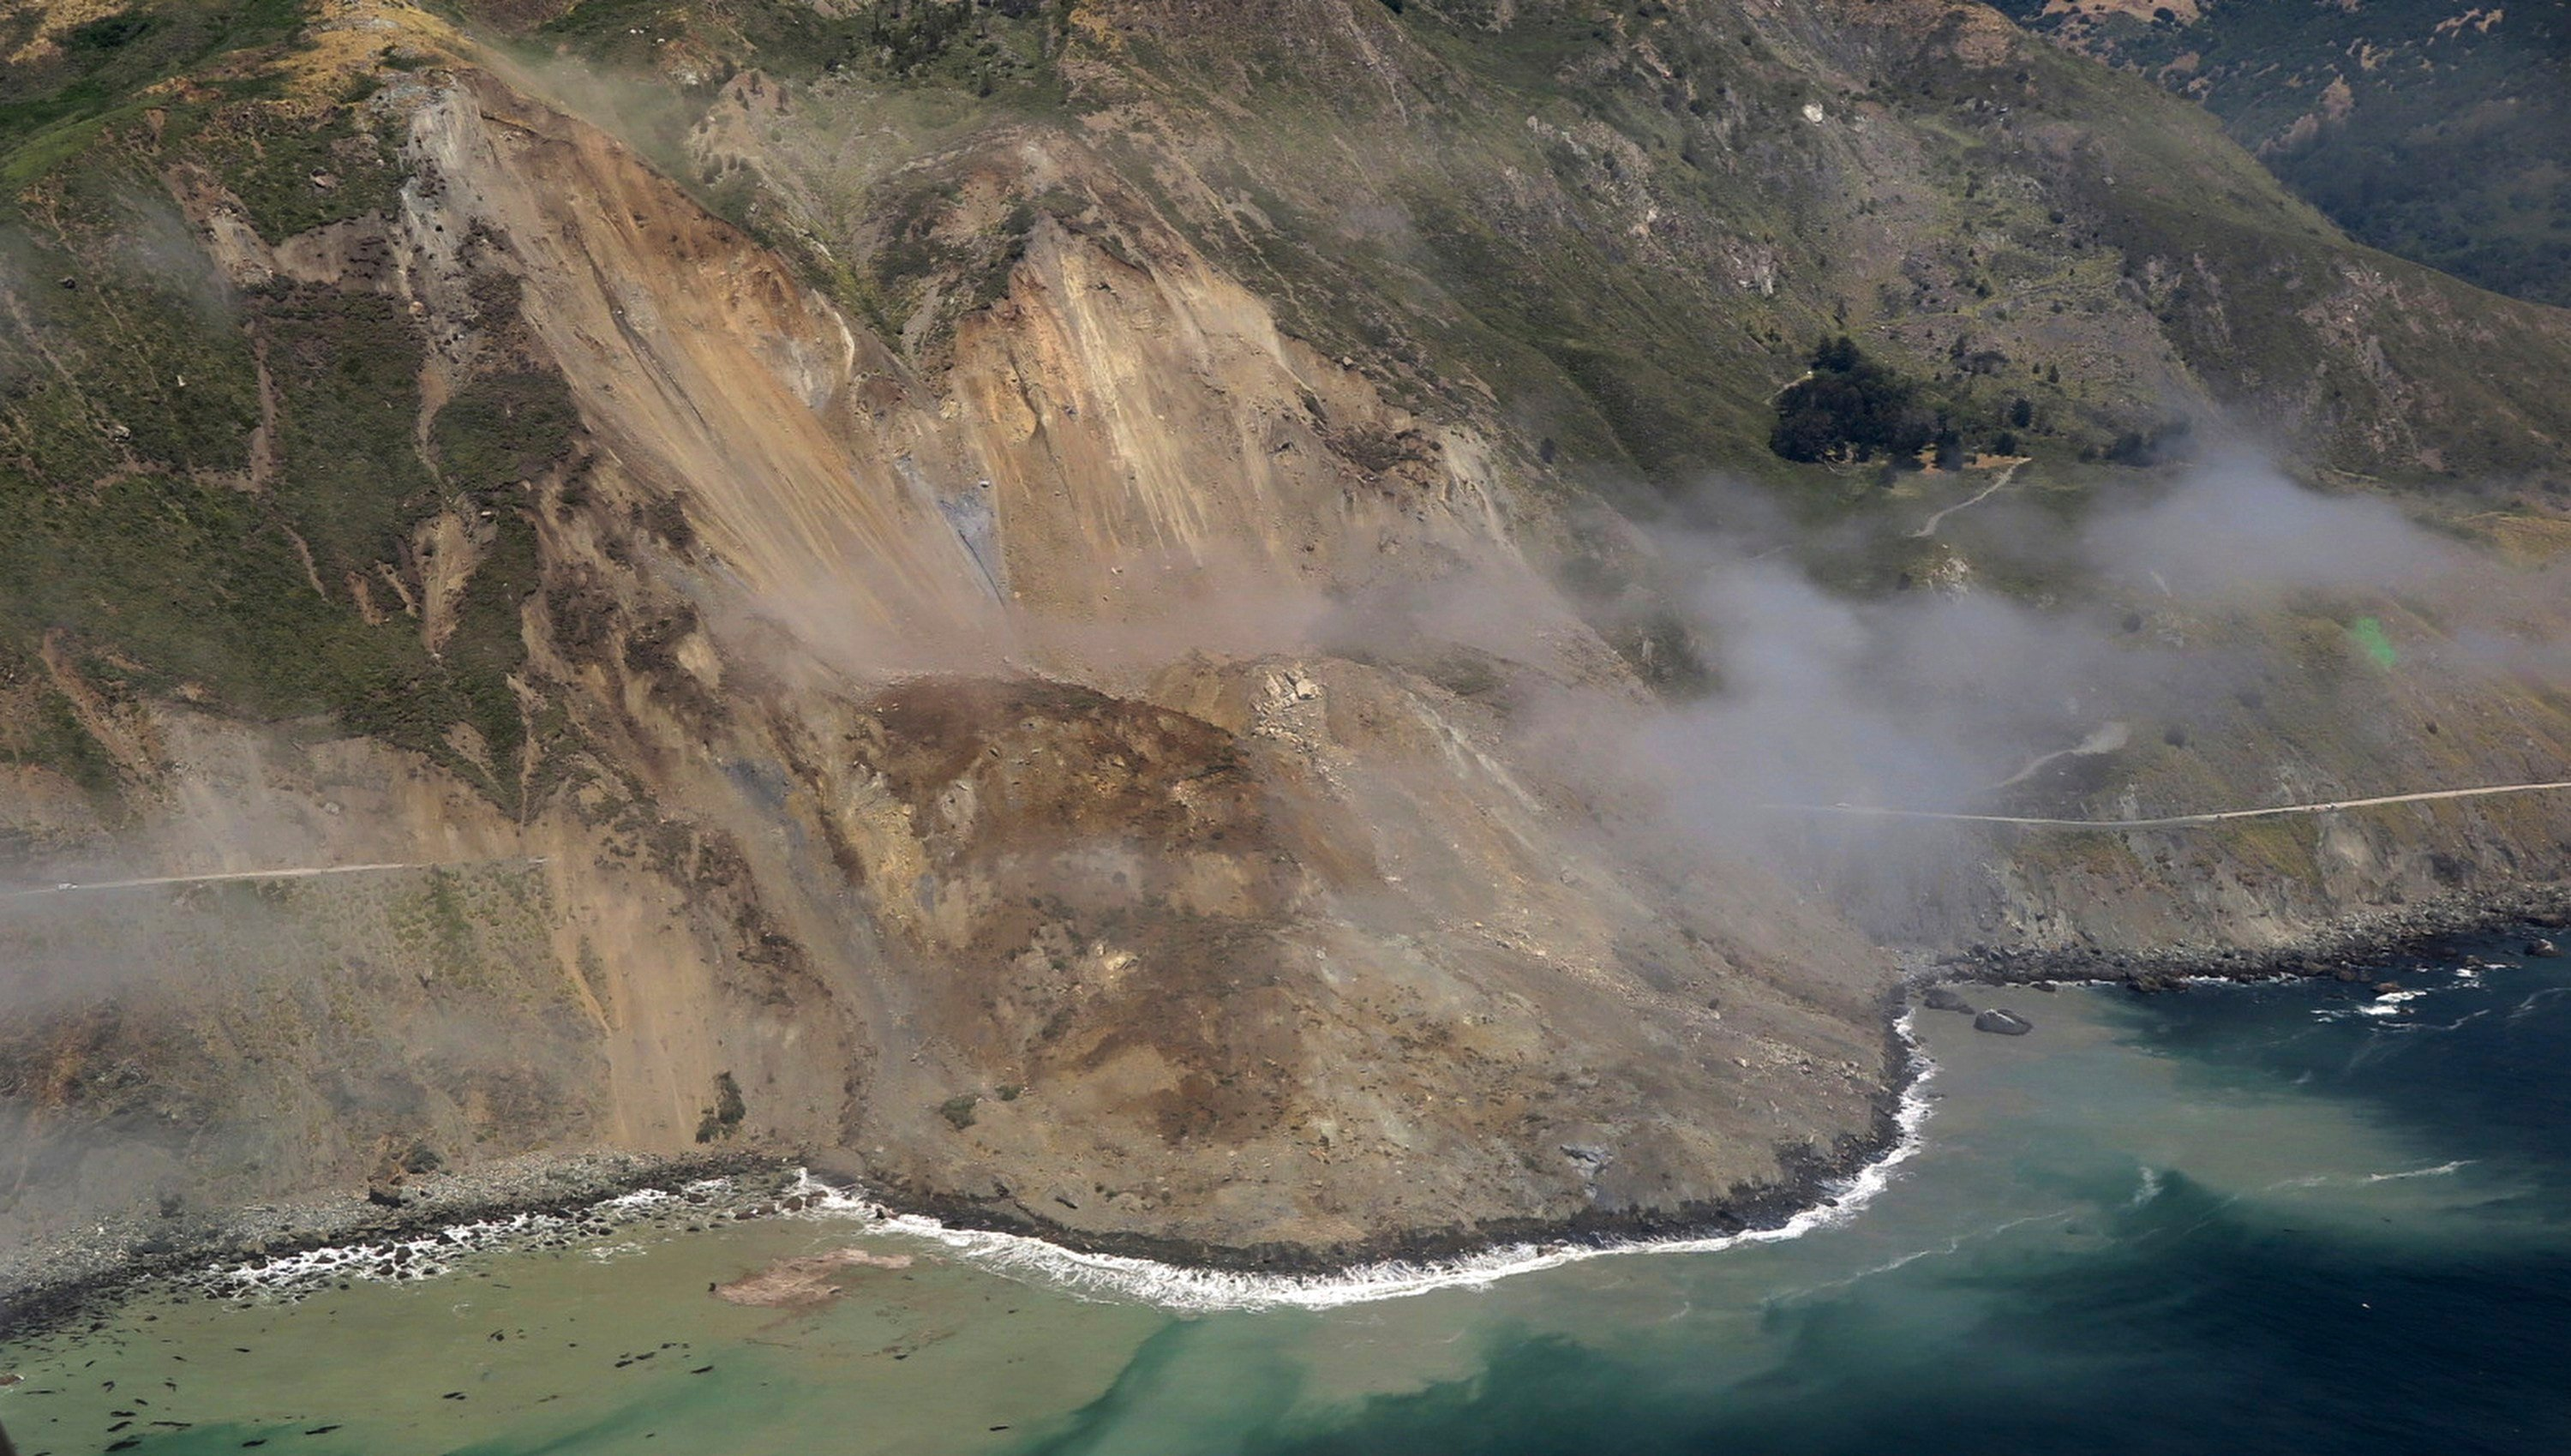 A swath of the hillside gave way in an area called Mud Creek on Saturday, May 20, 2017 covering about one-third of a mile, half a kilometer, of road and changing the Big Sur coastline. (John Madonna via AP)